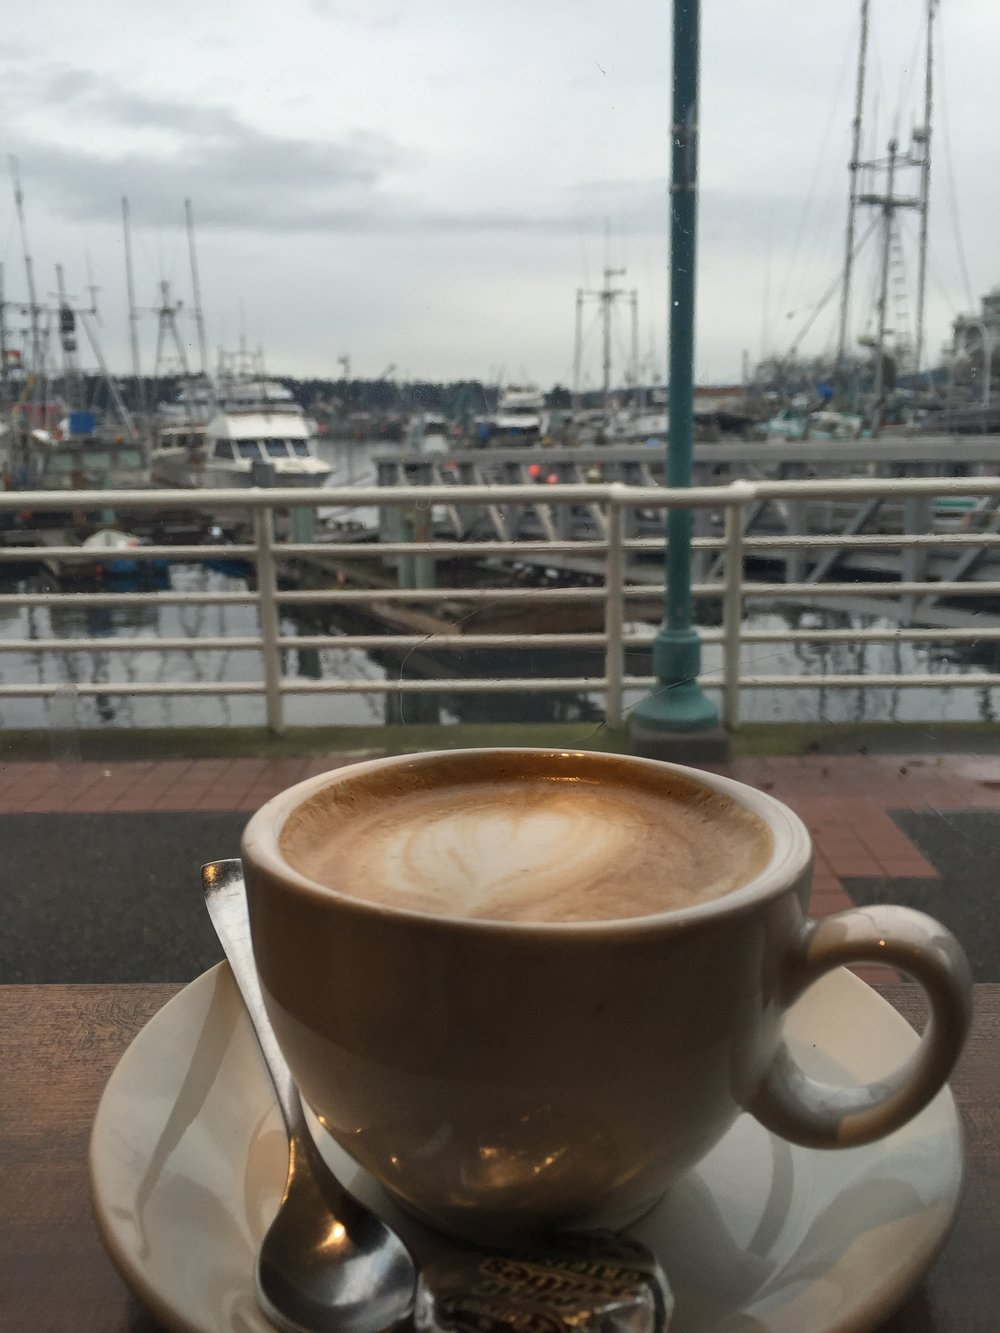 My last latte with a harbour view before heading off to the mainland. (March 24, 2016)